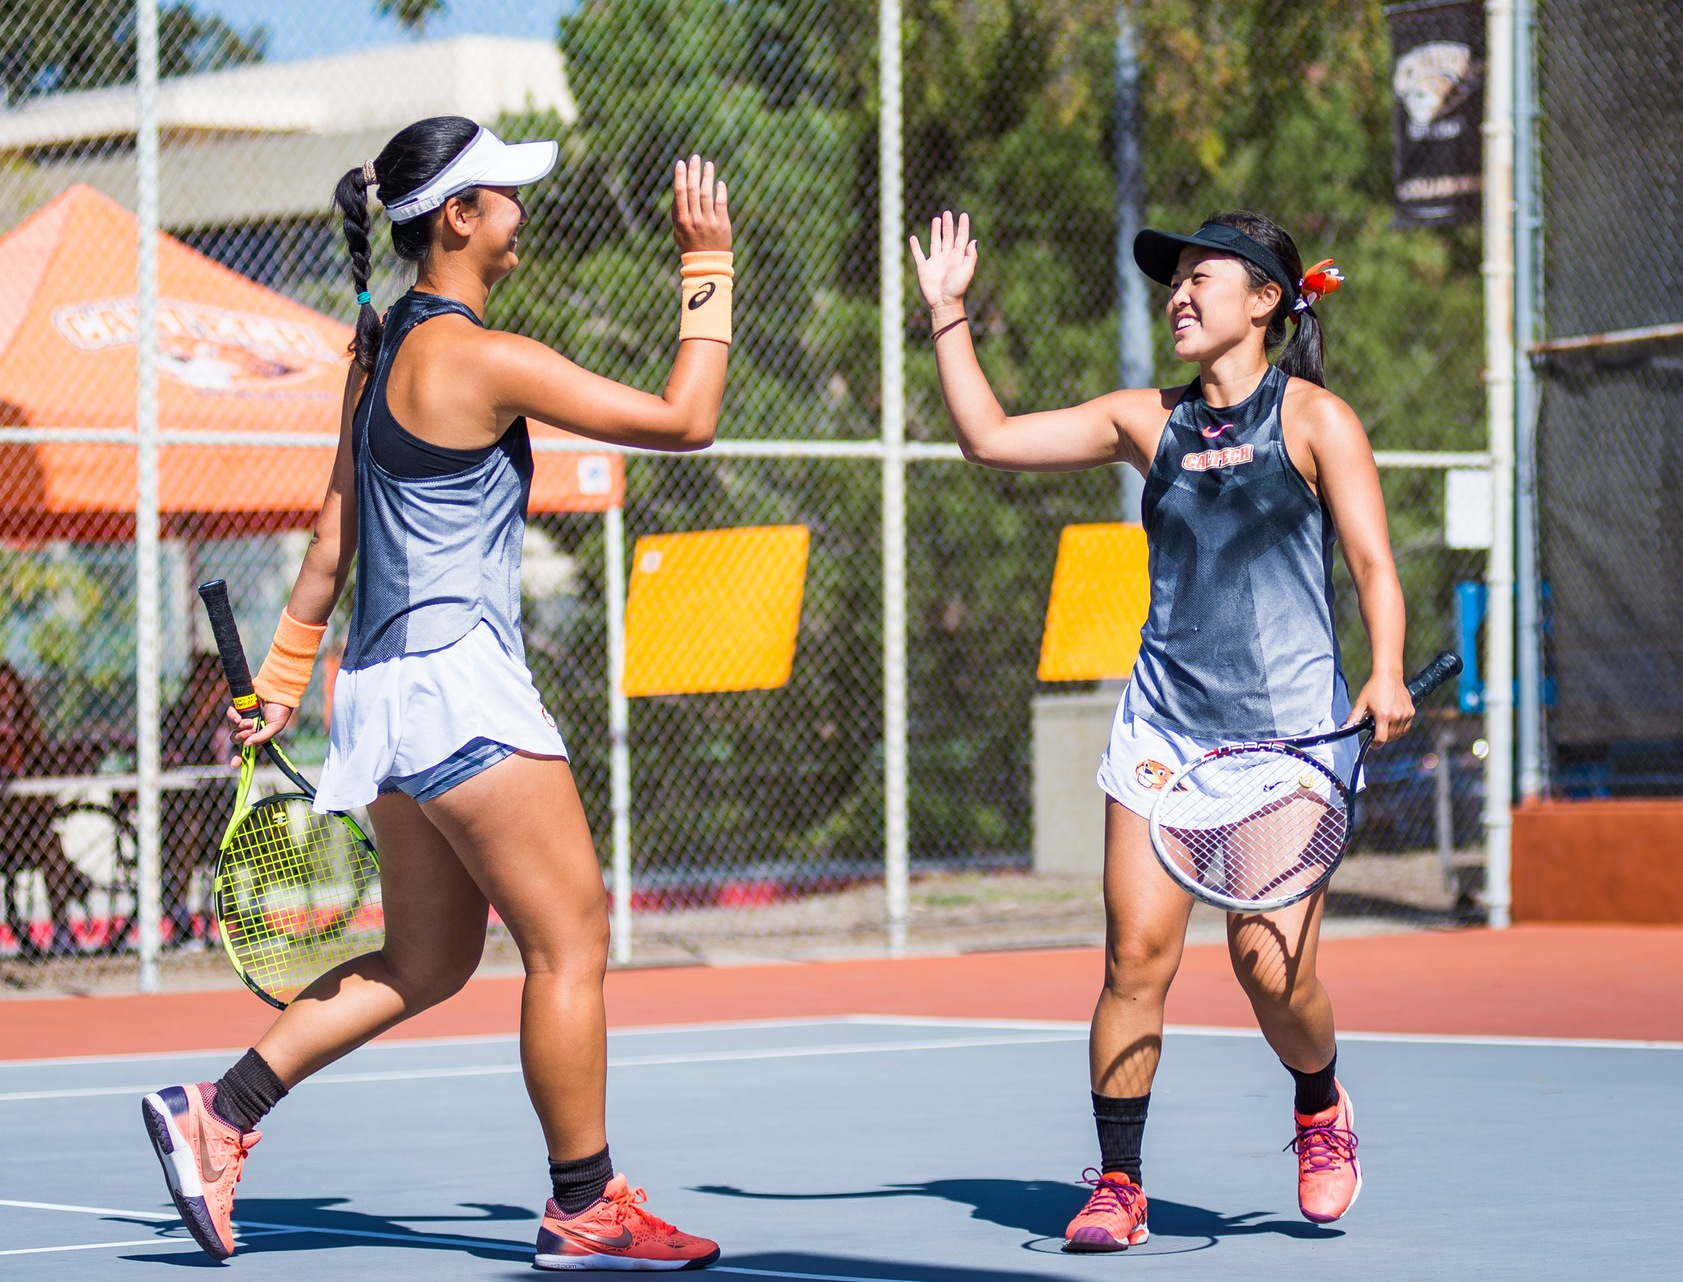 Women's Tennis Reveals 2019 Schedule